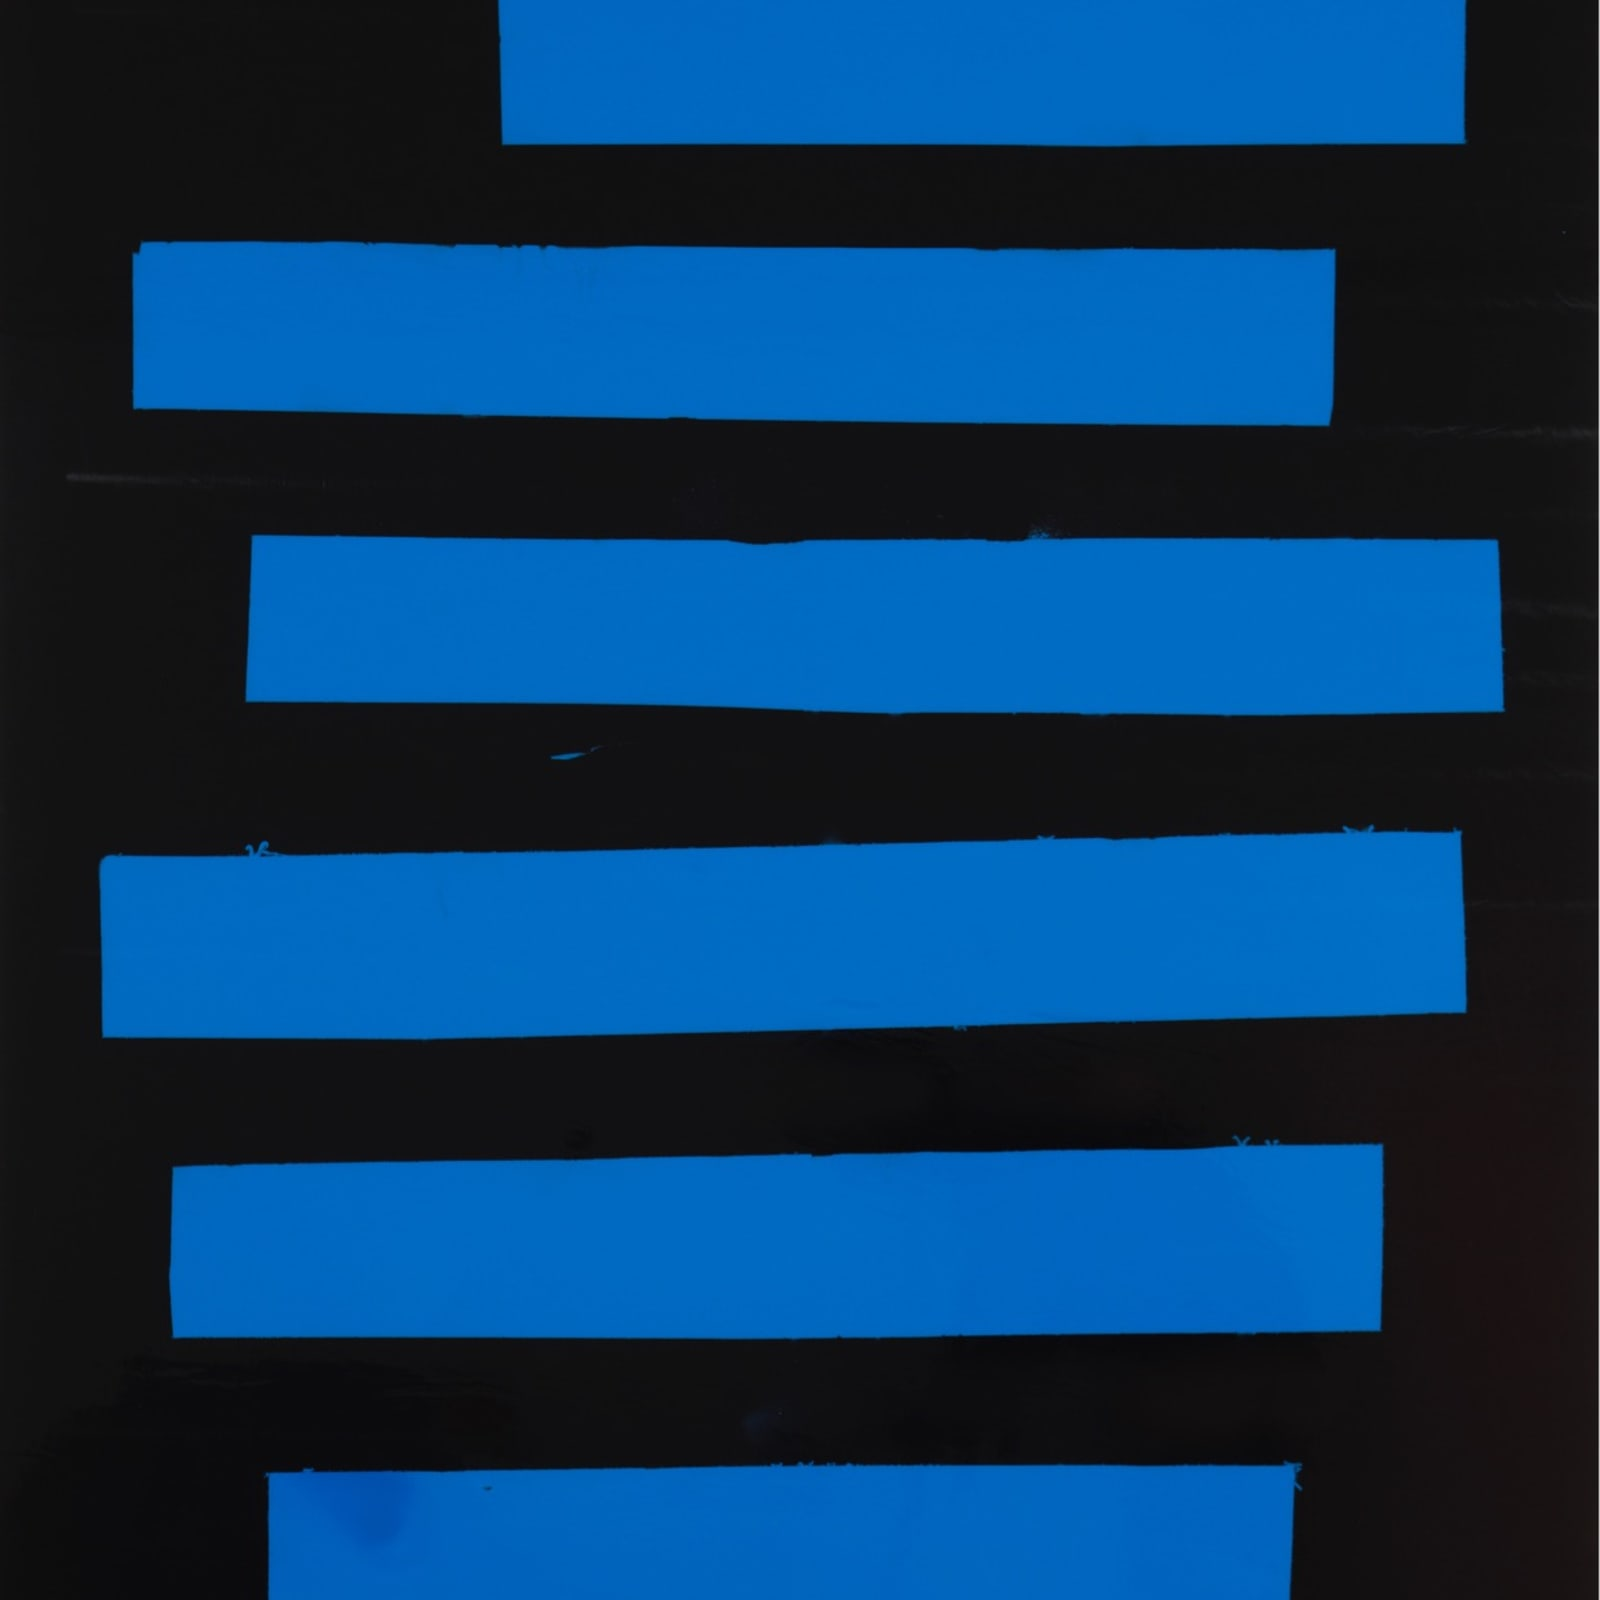 Tariku Shiferaw, Blue Lights (Jorga Smith), 2019